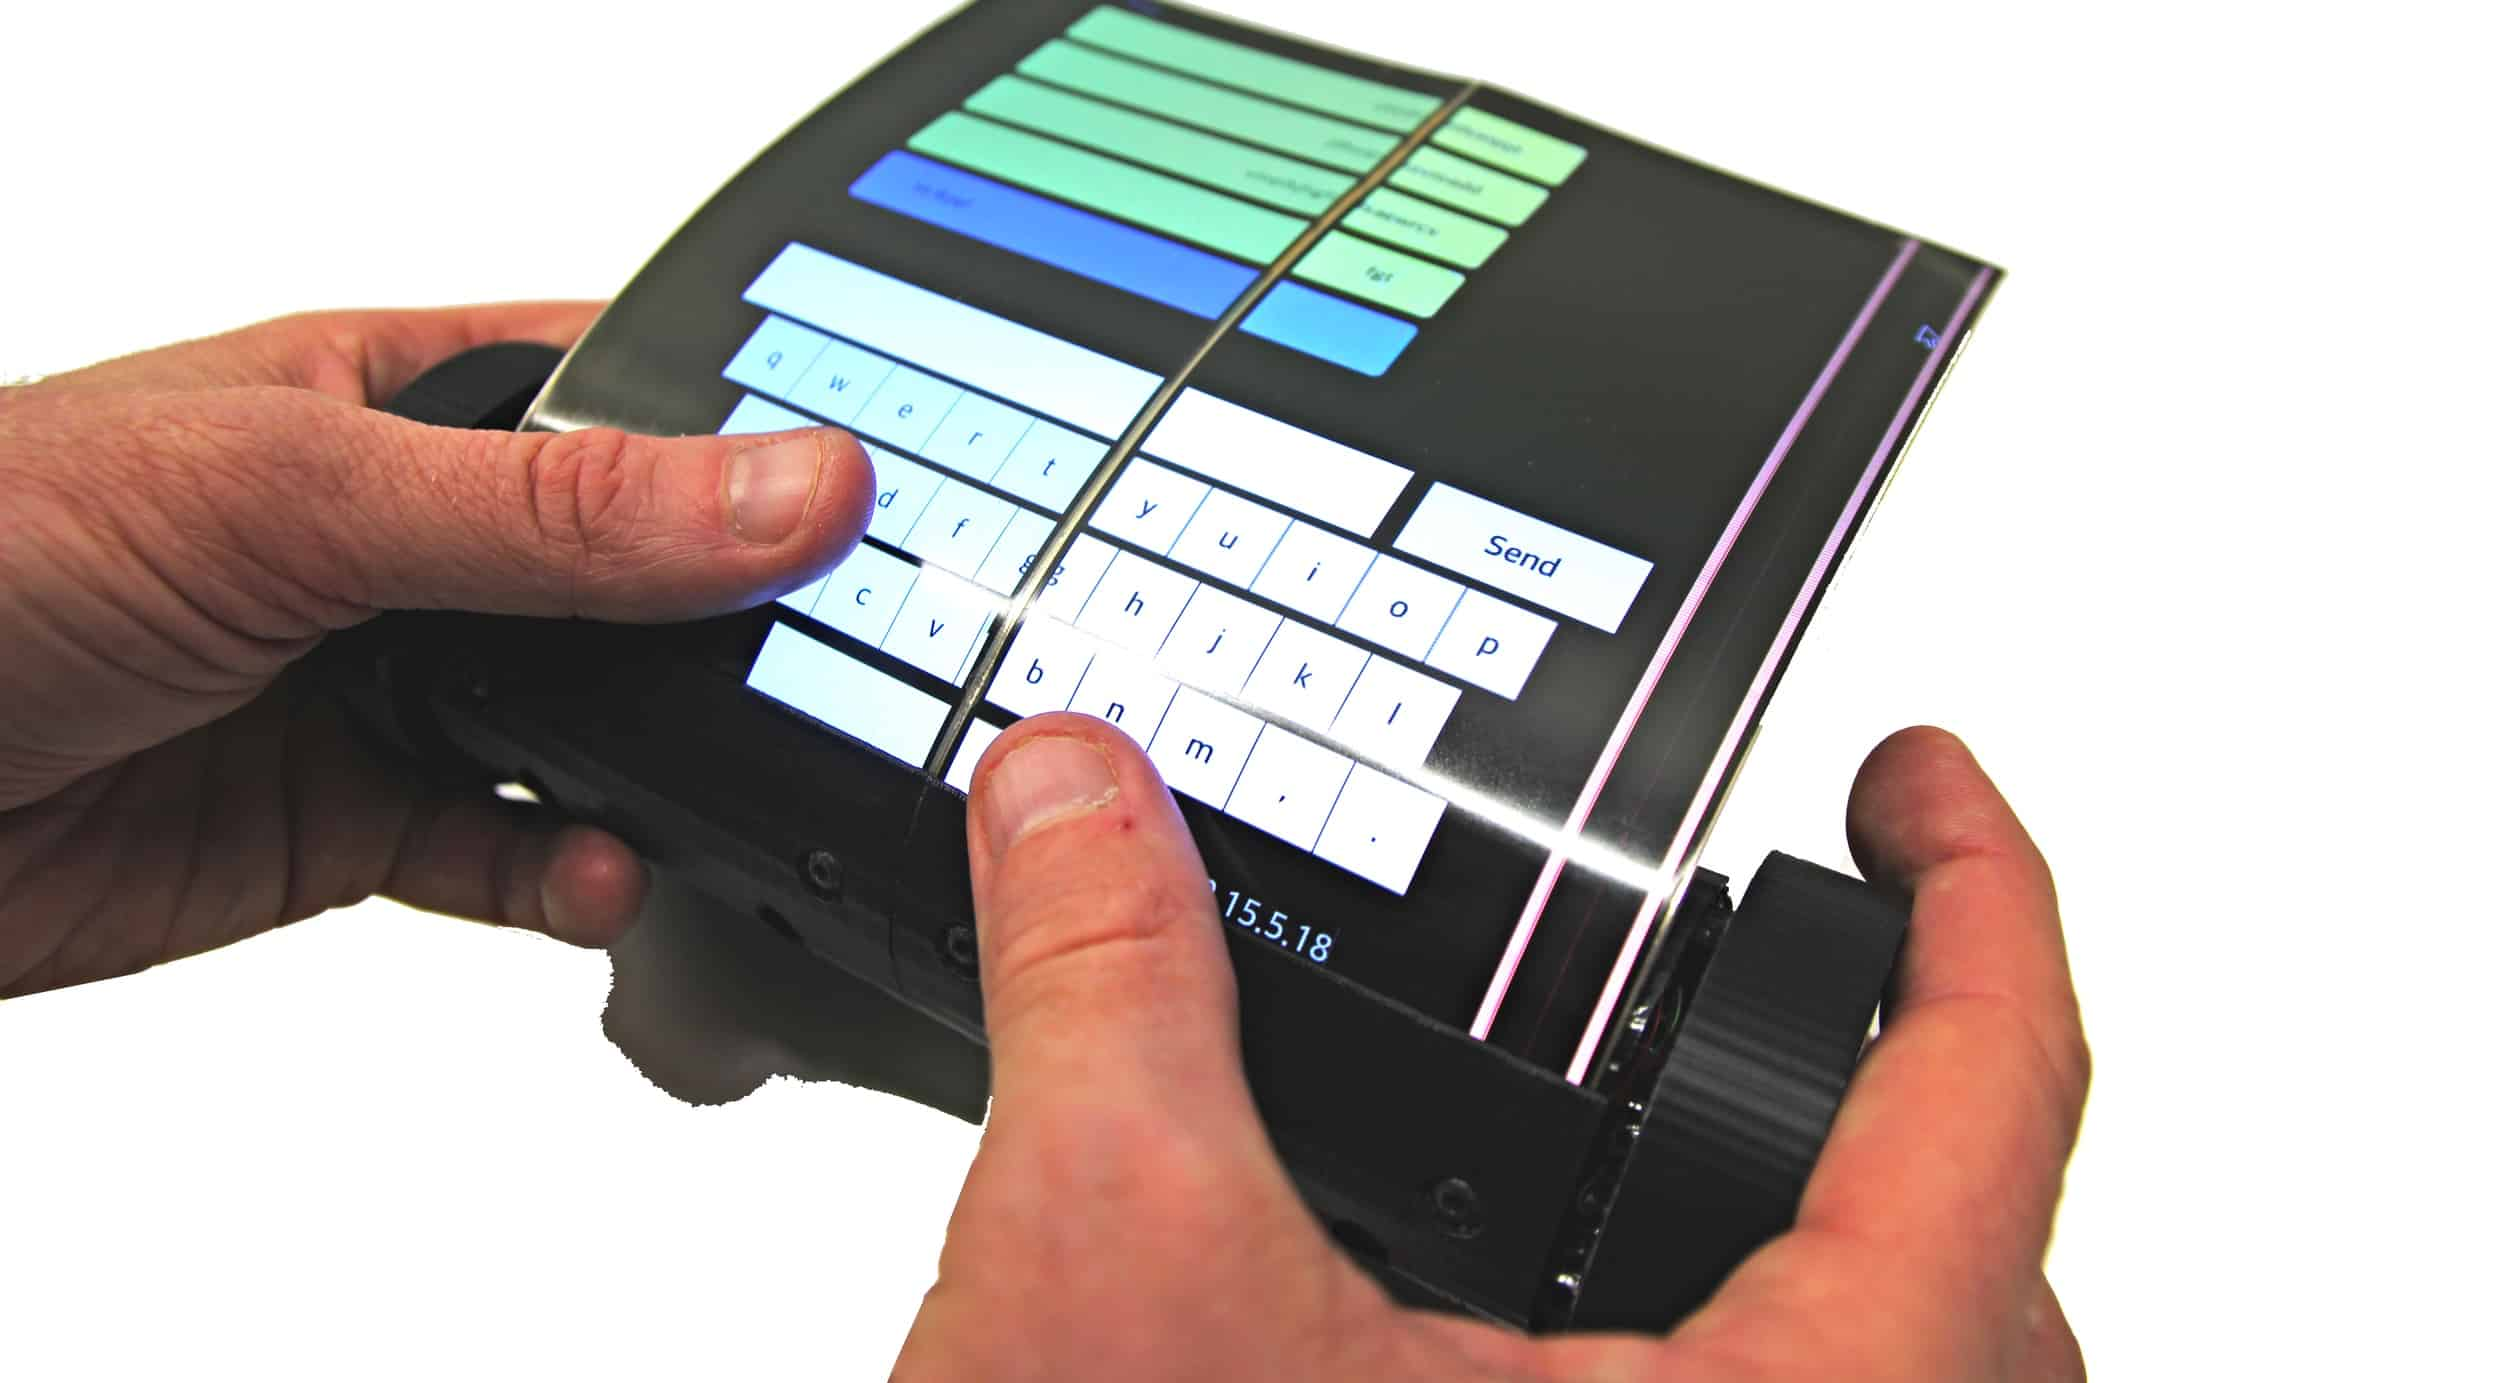 The MagicScroll is a tablet with a display flexible enough to roll into a cylinder.